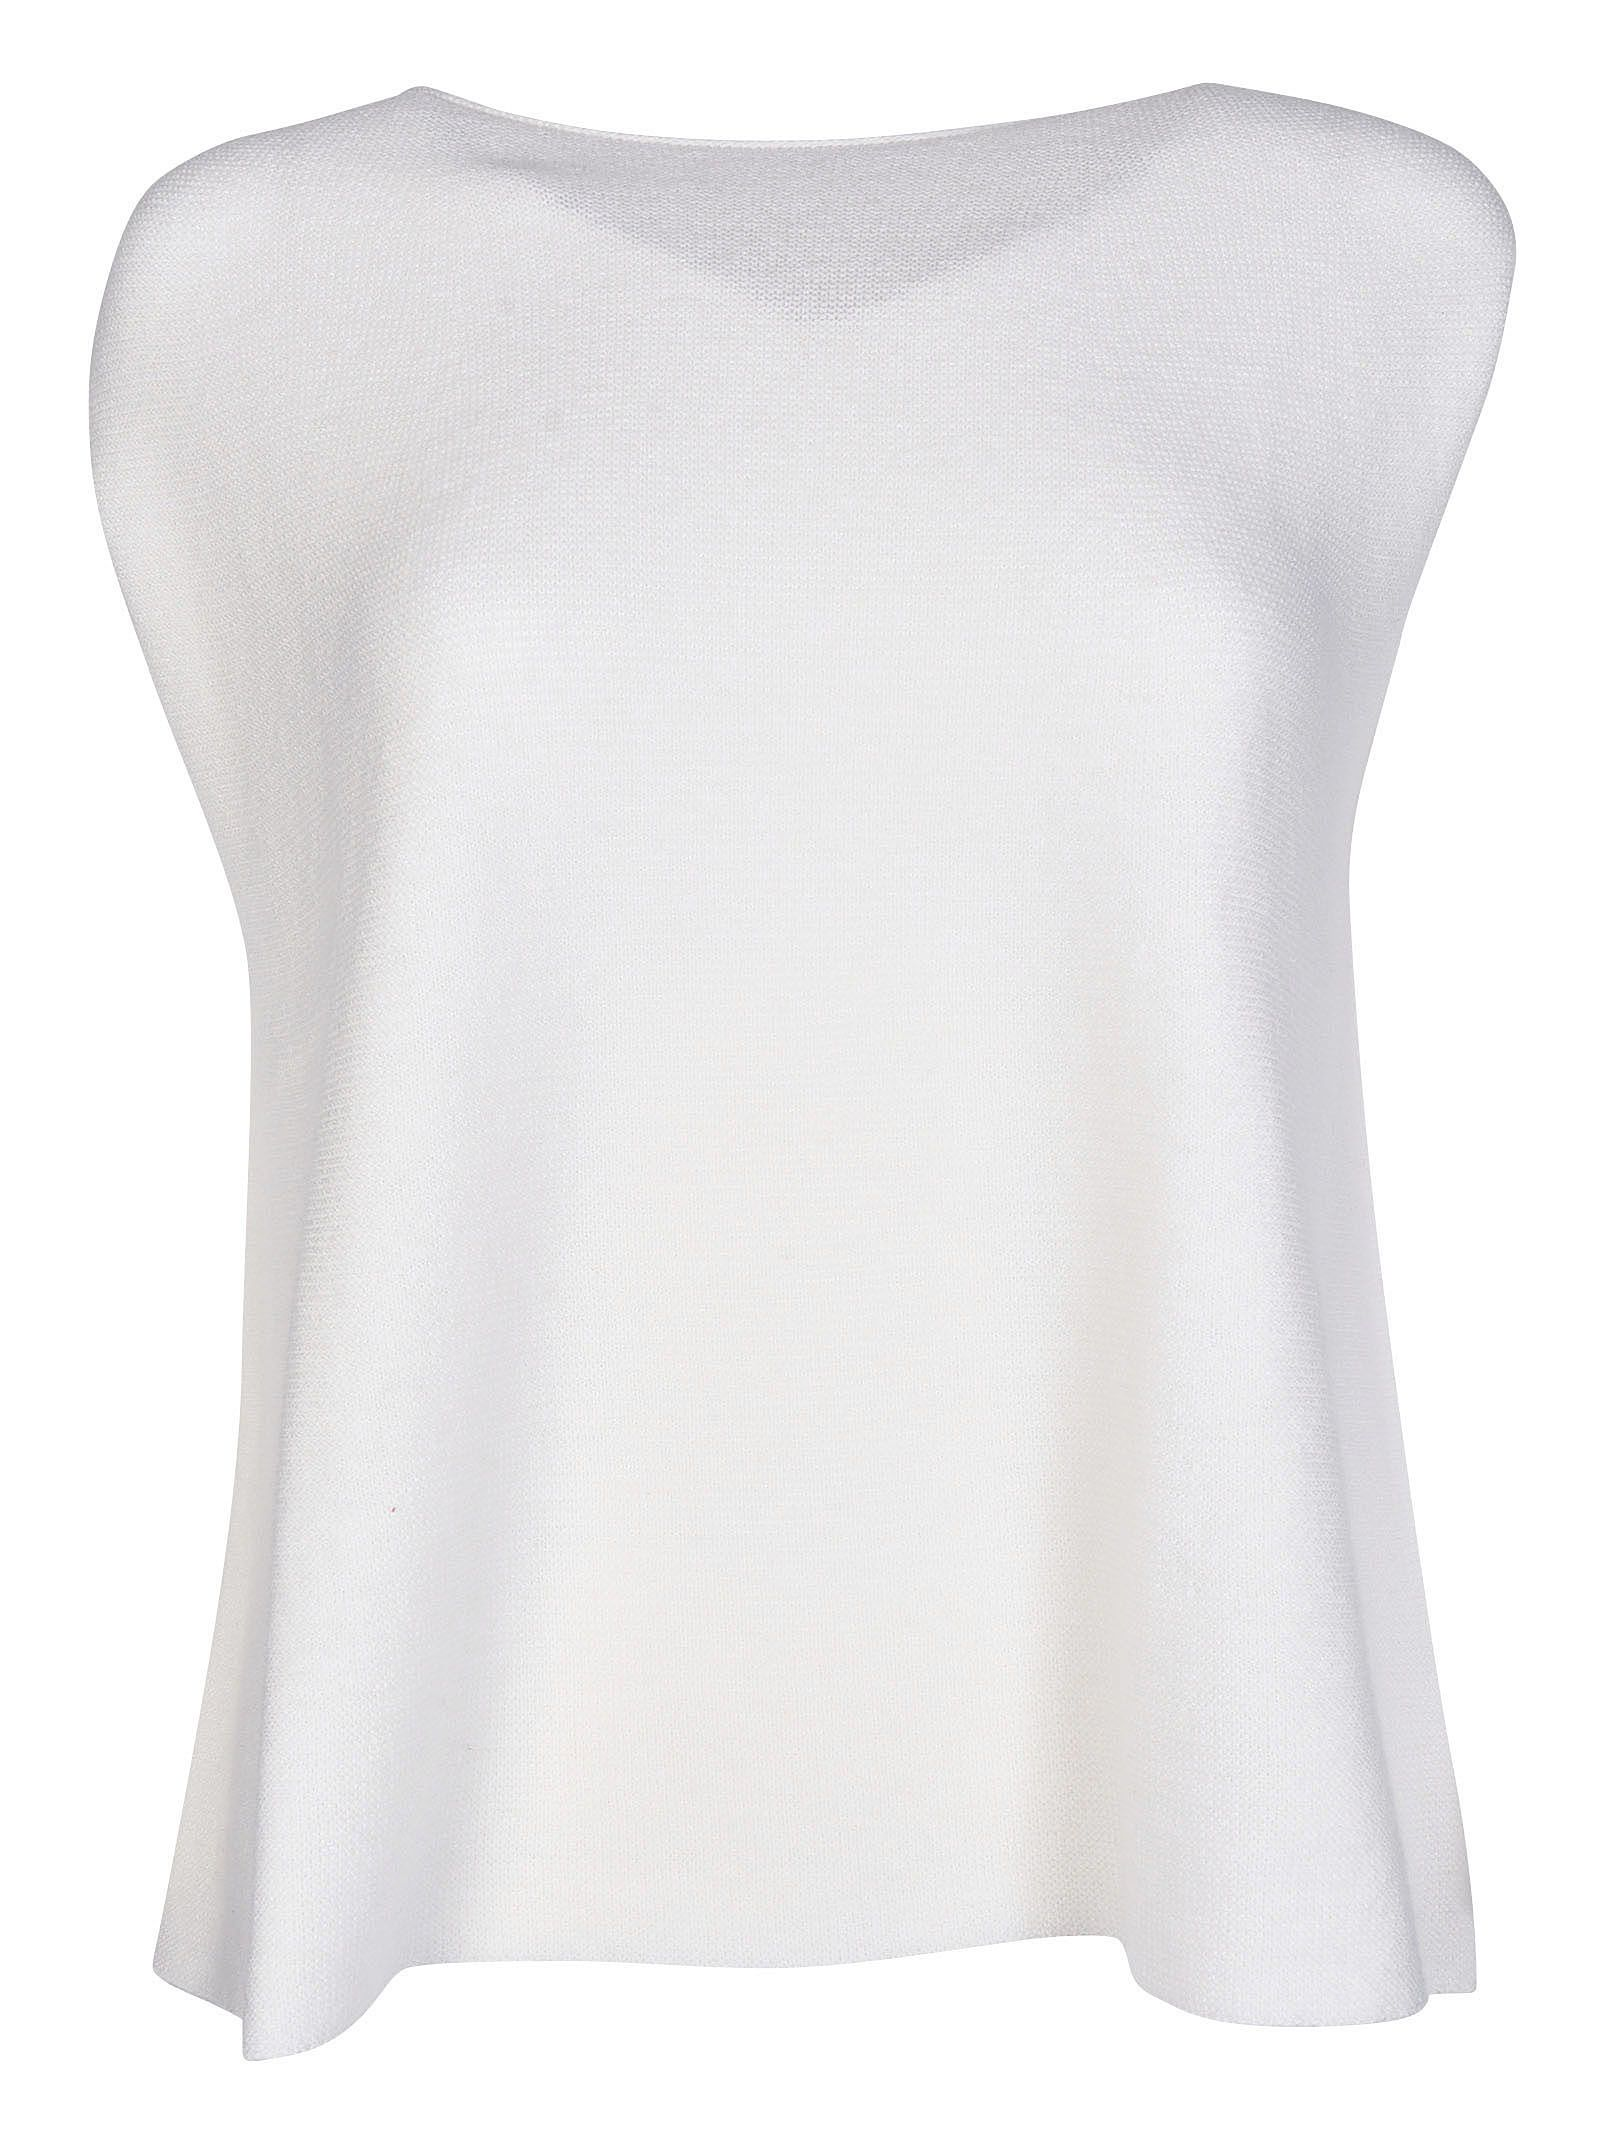 Fedeli Sleeveless Top